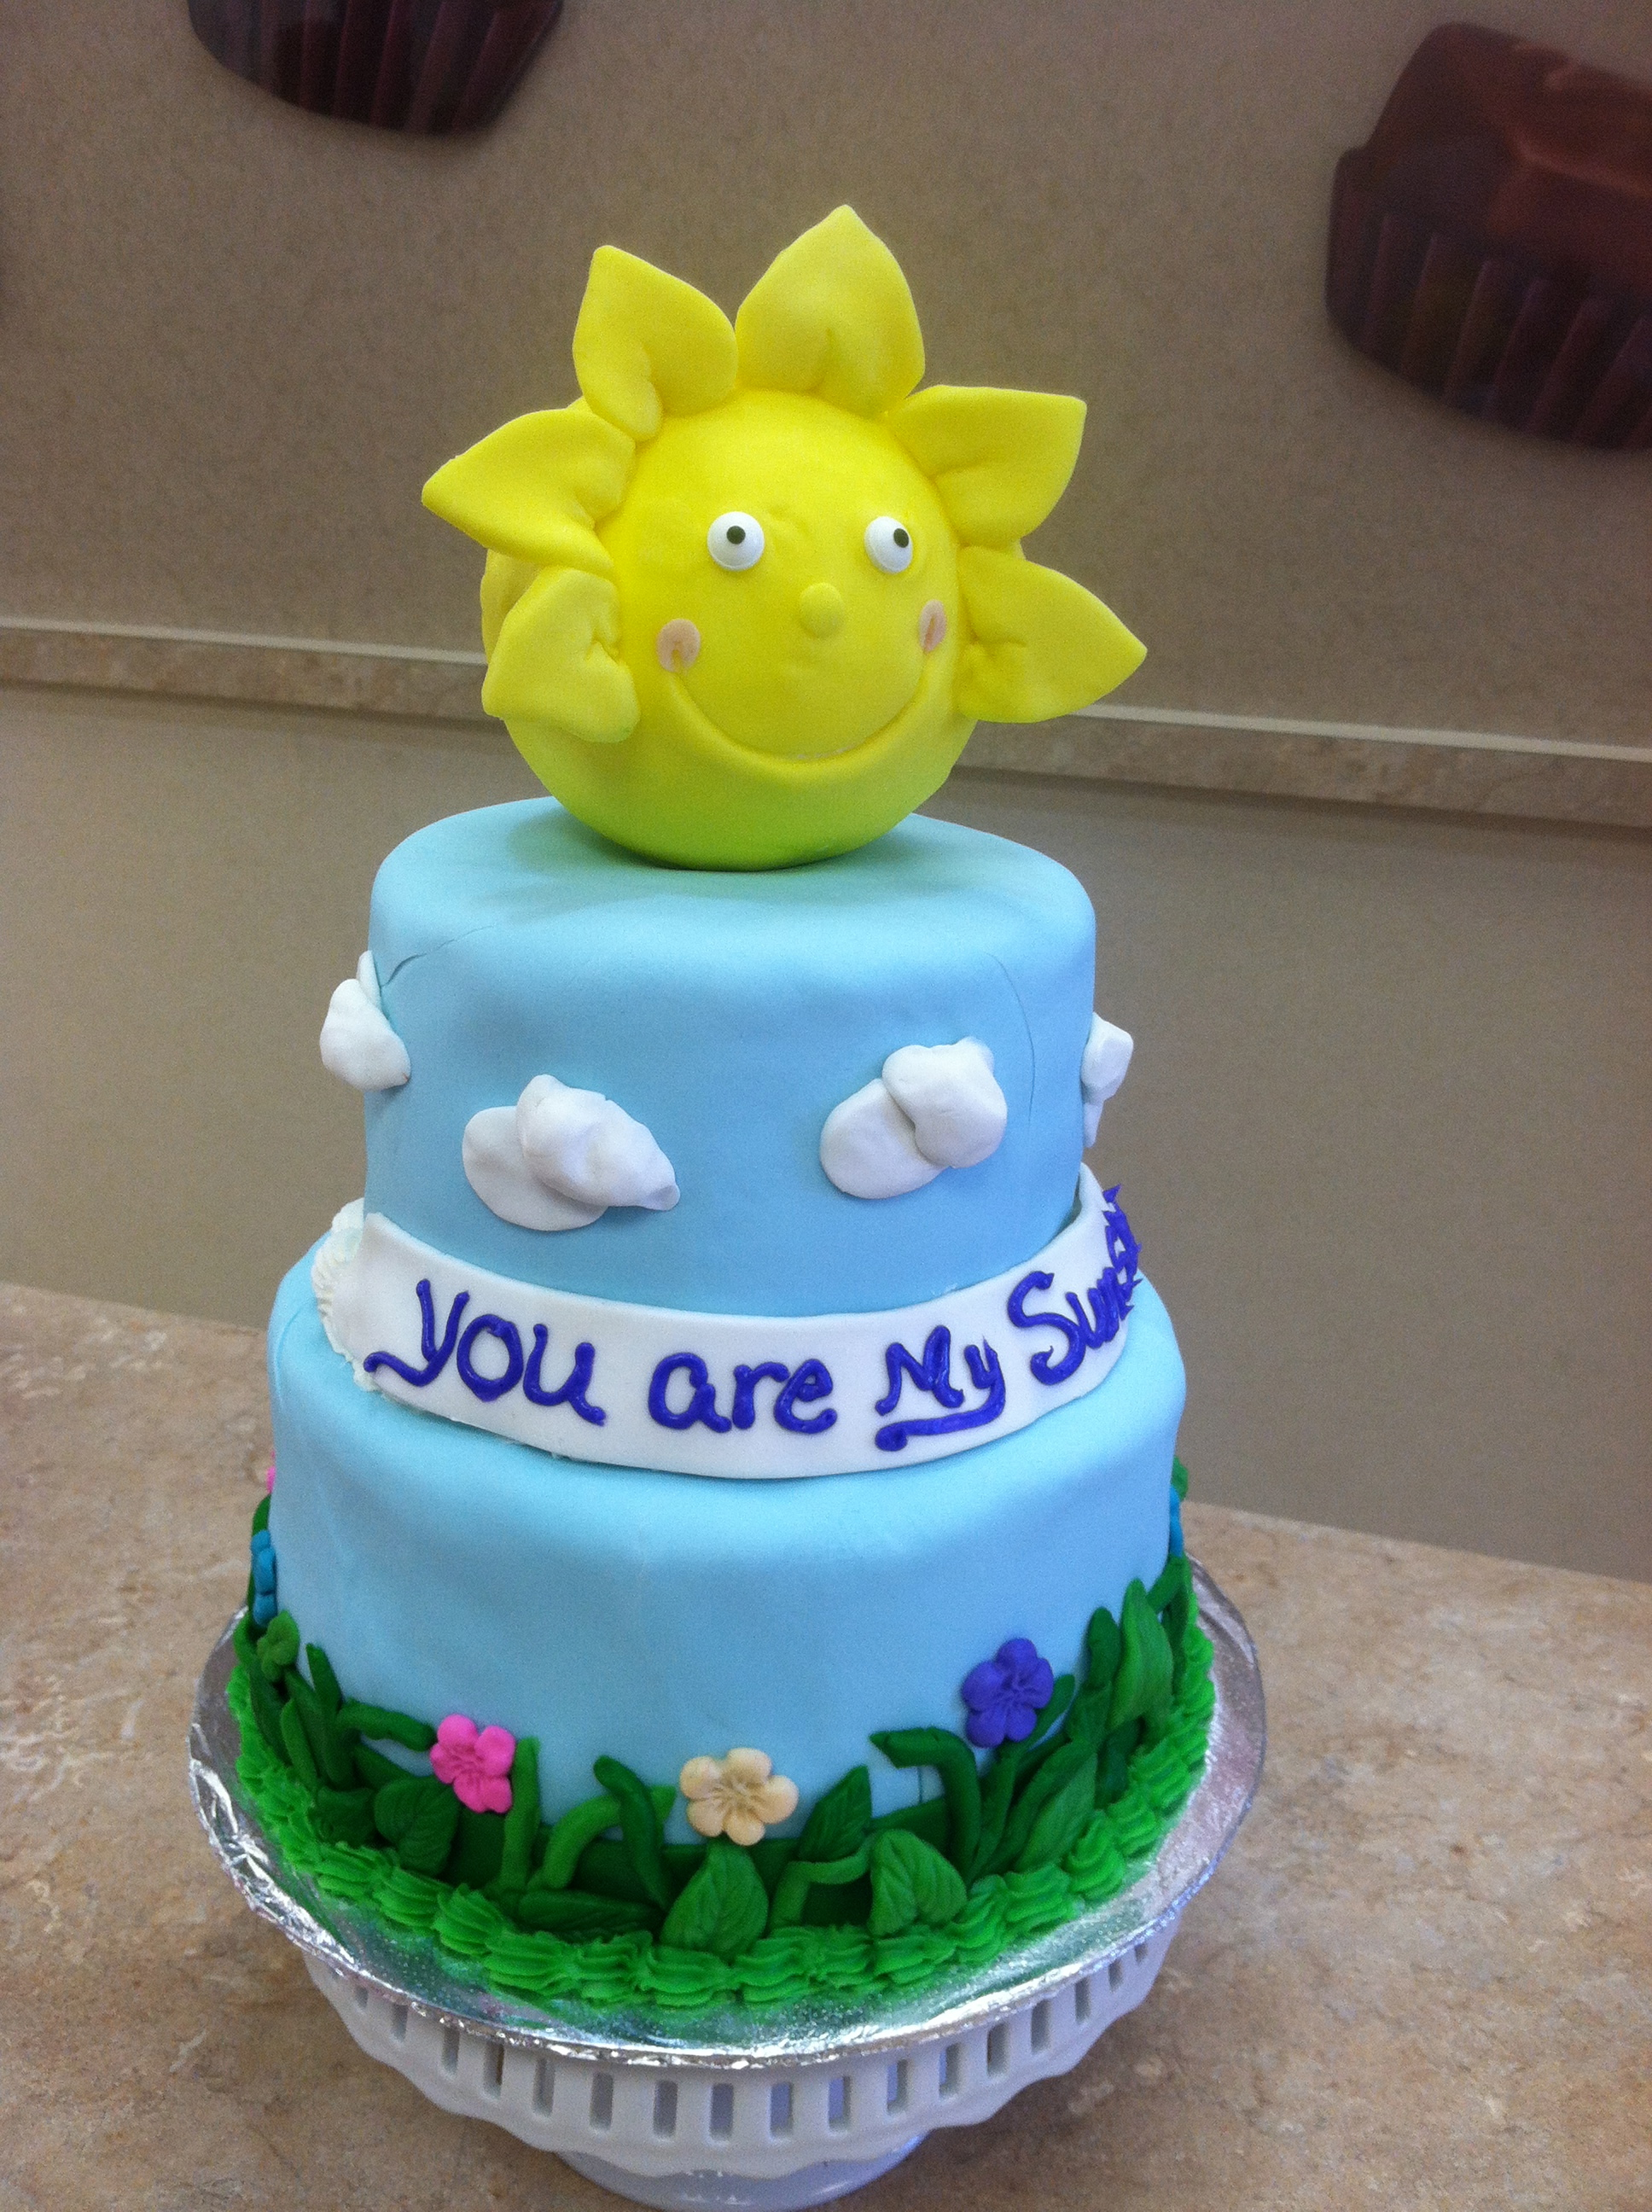 You Are My Sunshine Cake